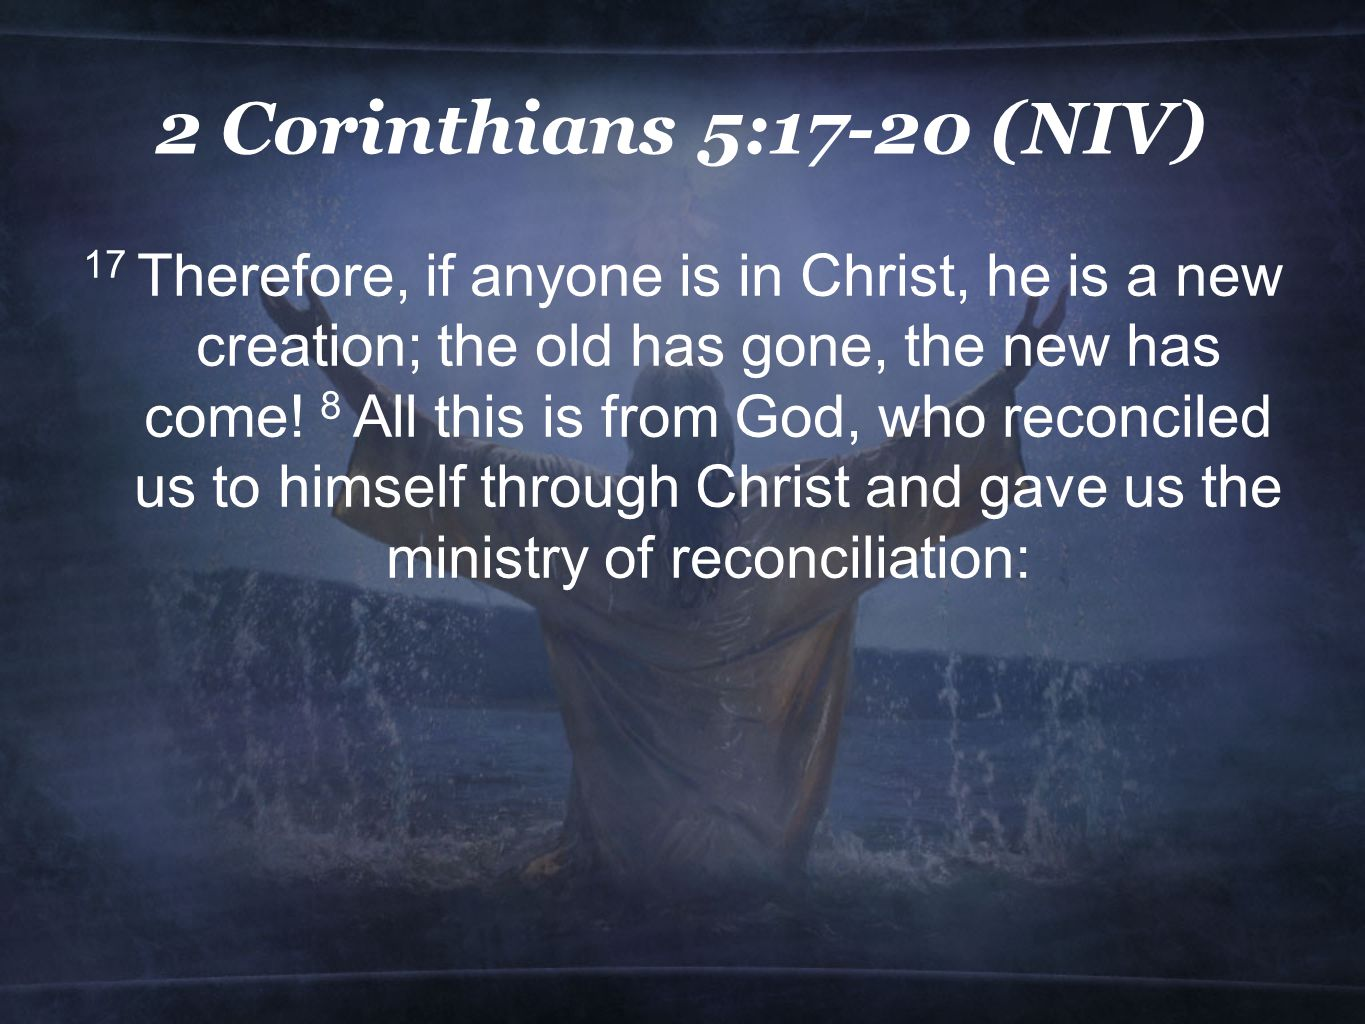 2 Corinthians 5:17-20 (NIV) 17 Therefore, if anyone is in Christ, he is a new creation; the old has gone, the new has come.